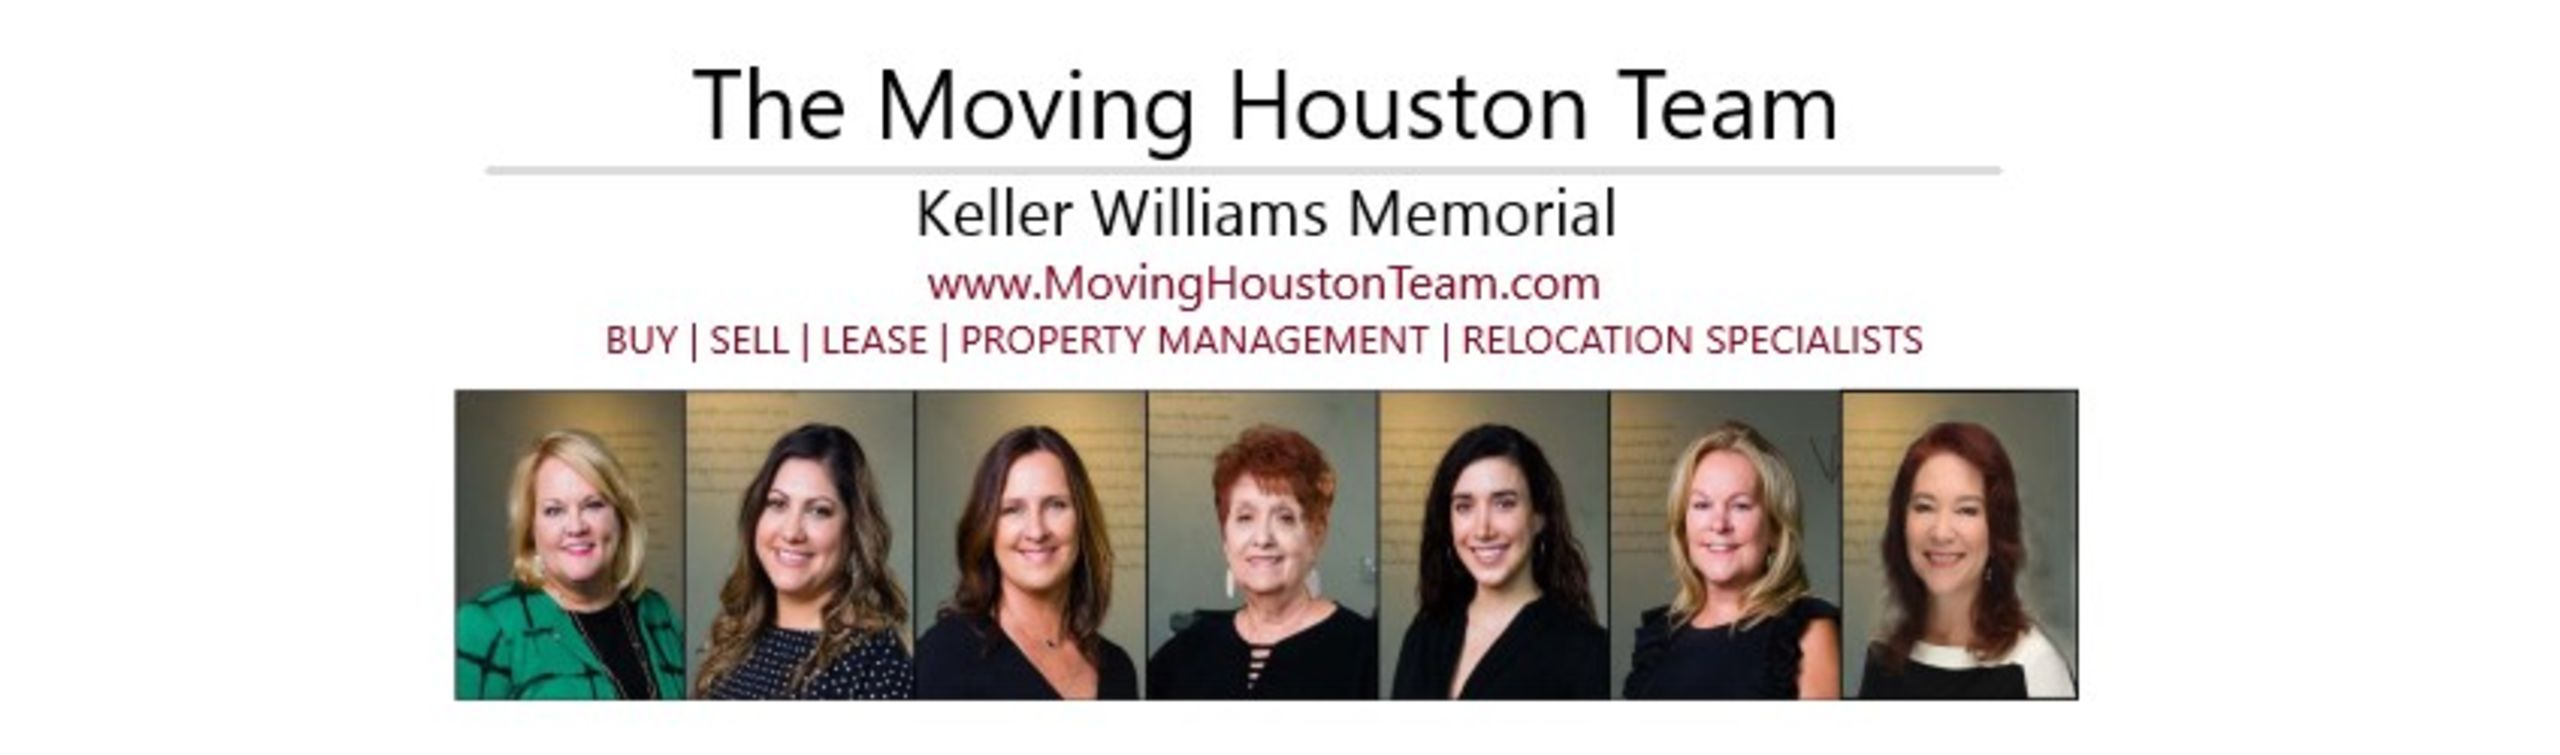 The Moving Houston Team